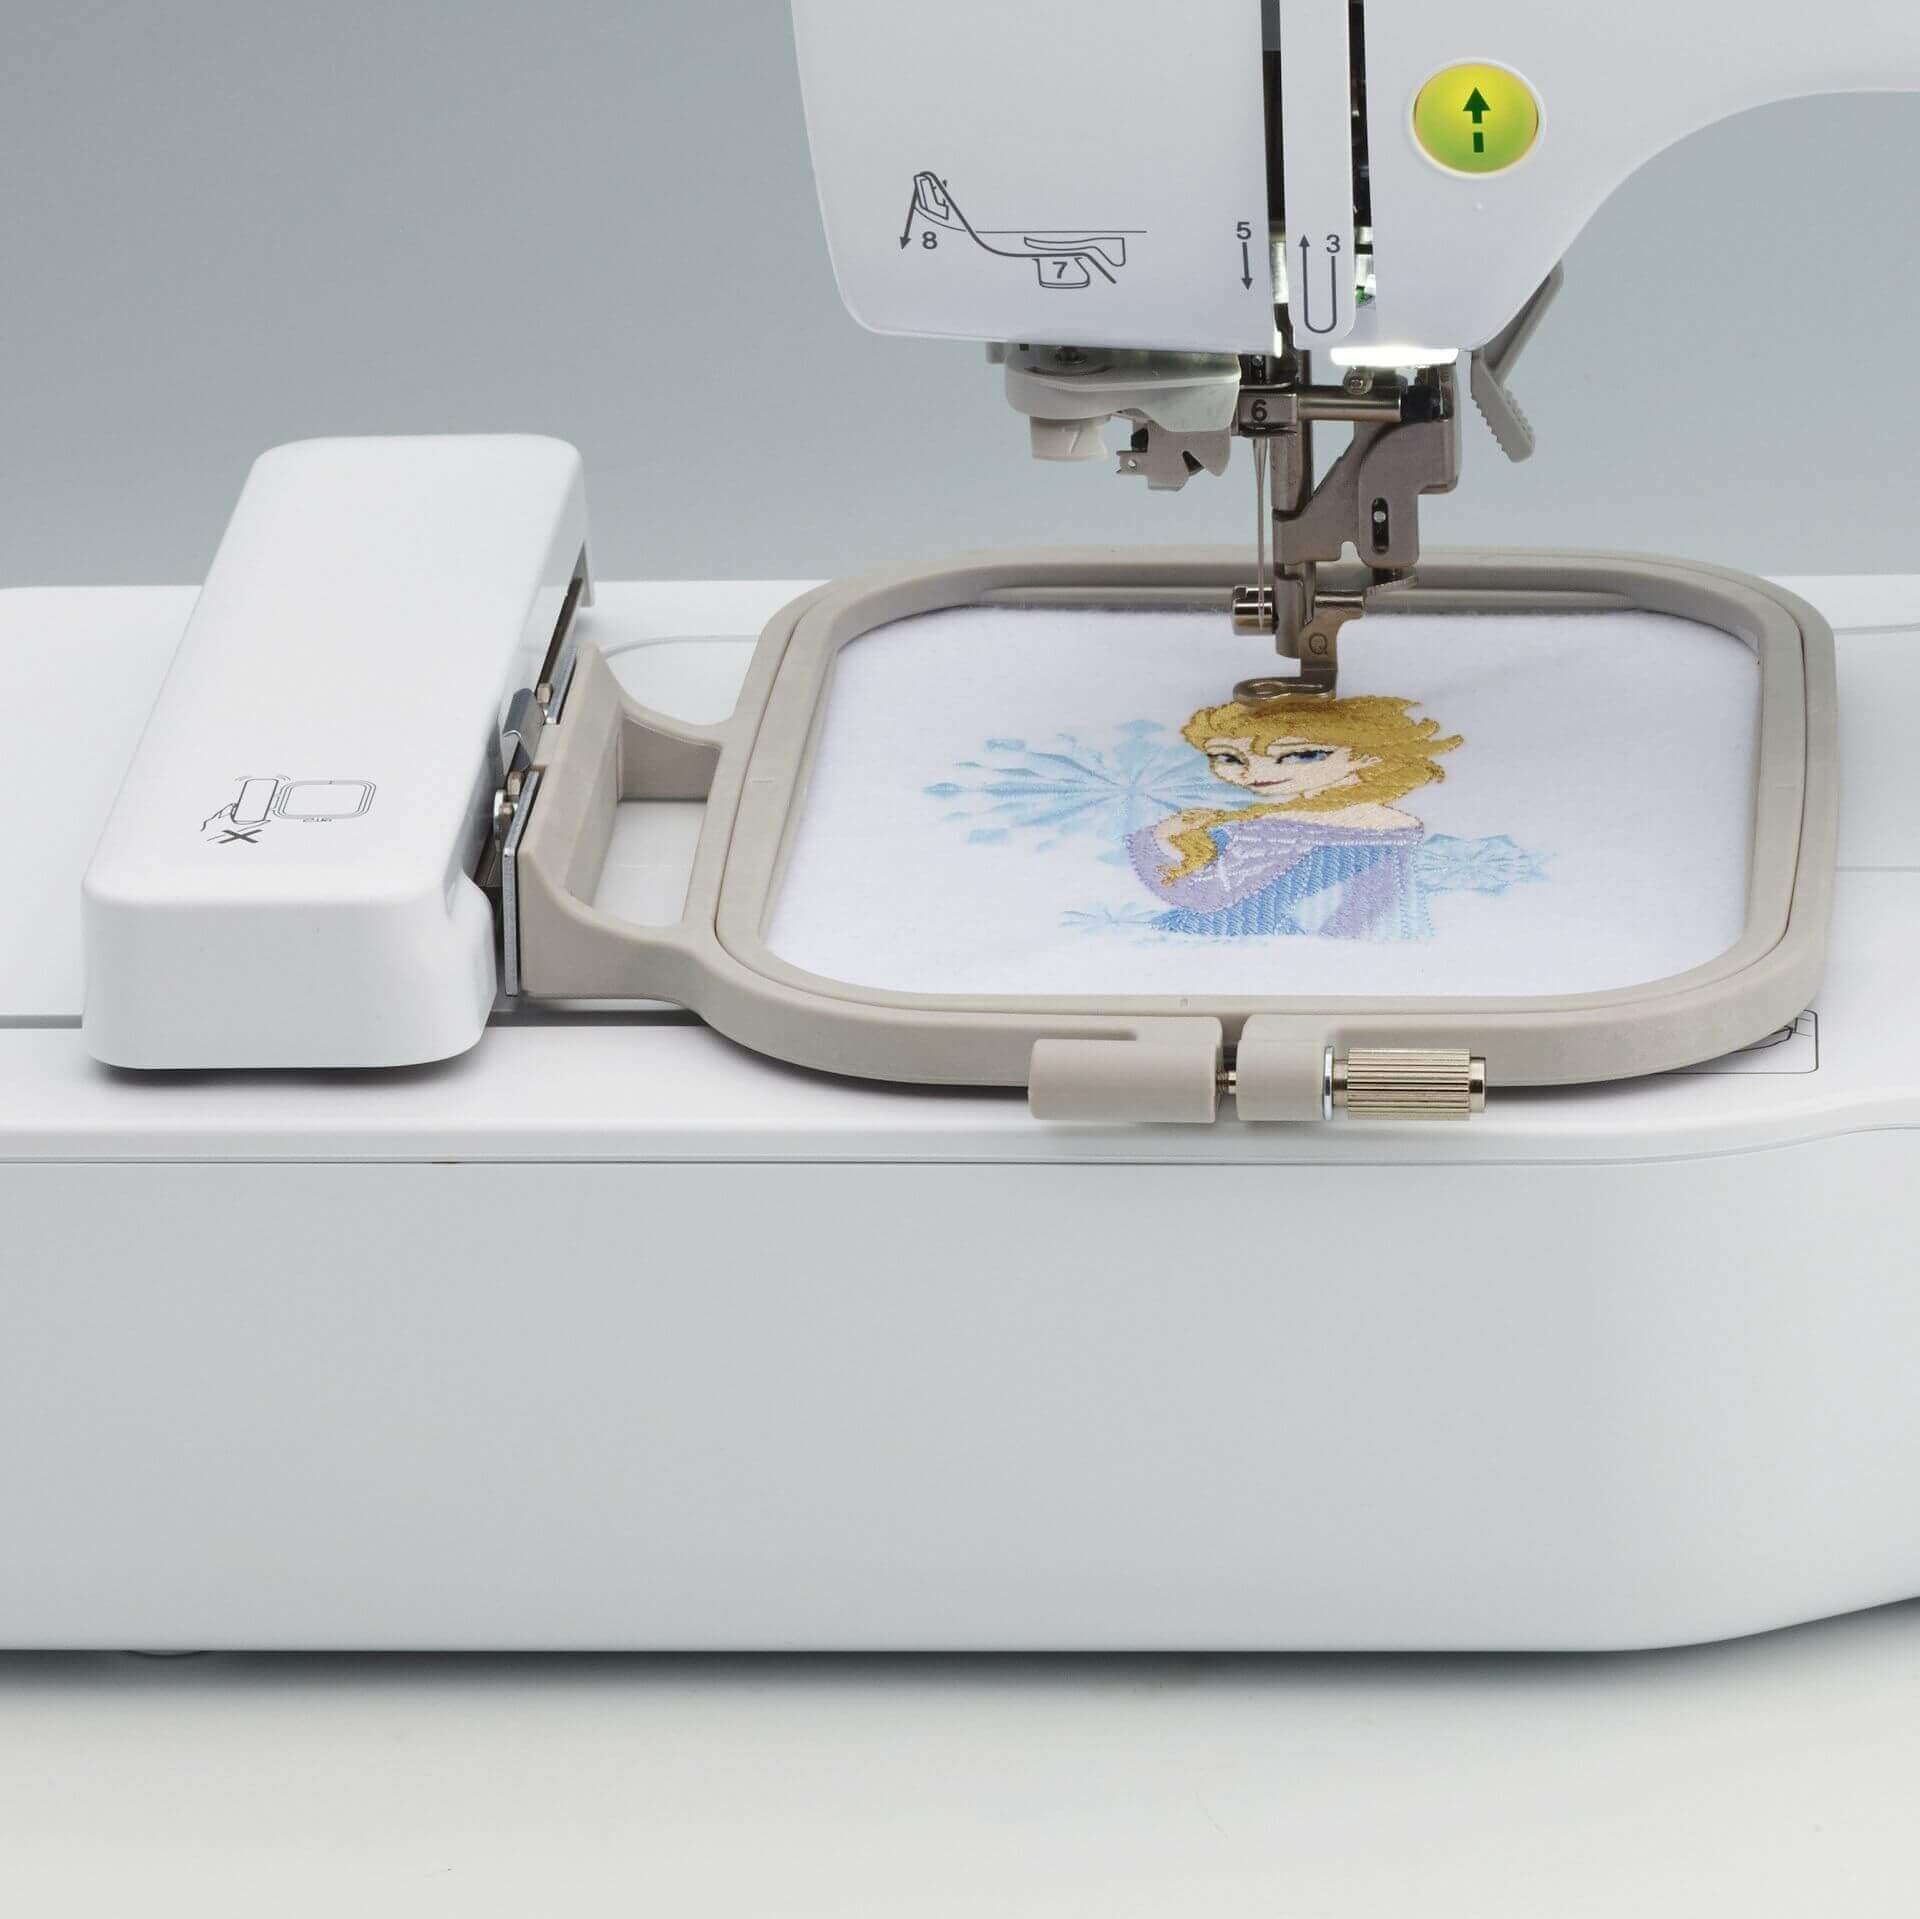 brother PE550D embroidery machine